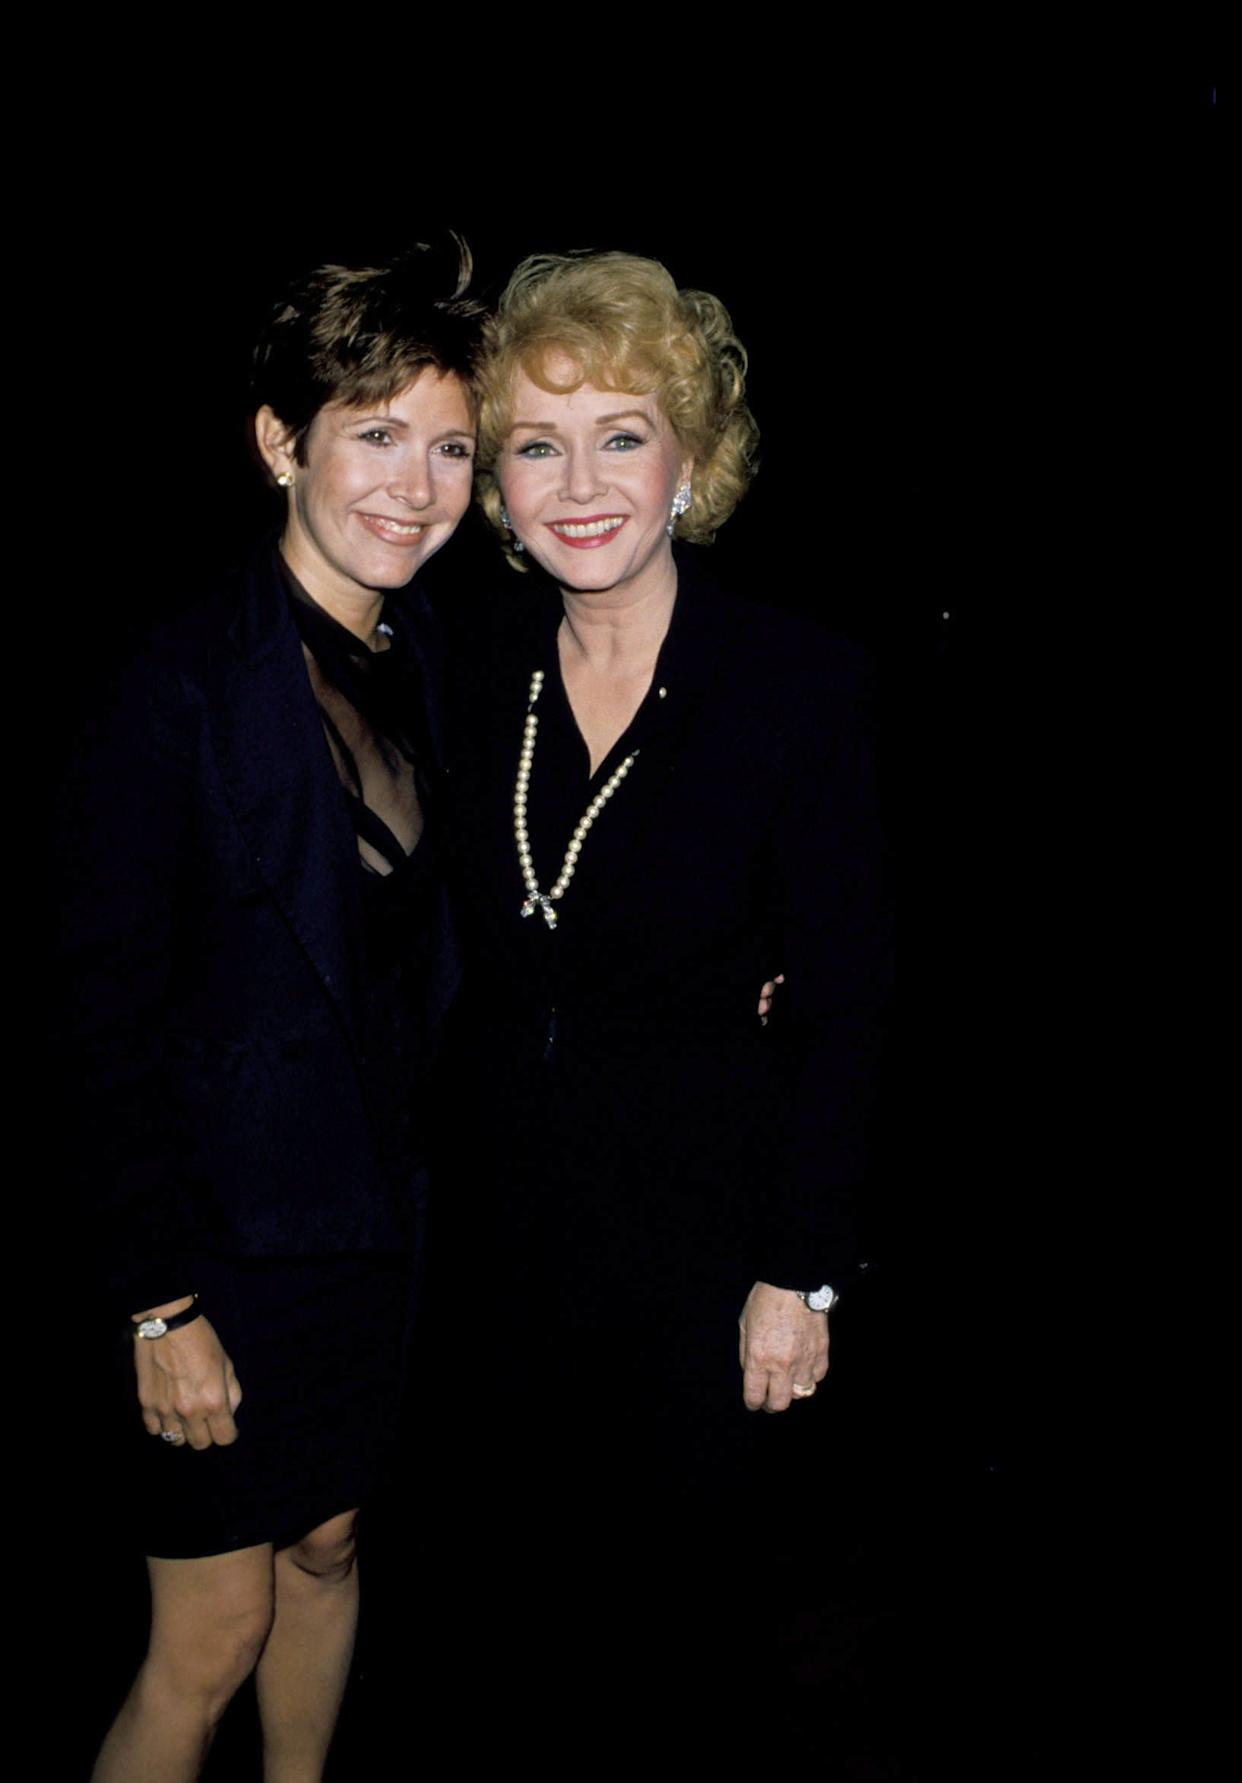 Carrie Fisher and Debbie Reynolds at'The Unsinkable Molly Brown' at the Pantages Theater in Hollywood in 1989.